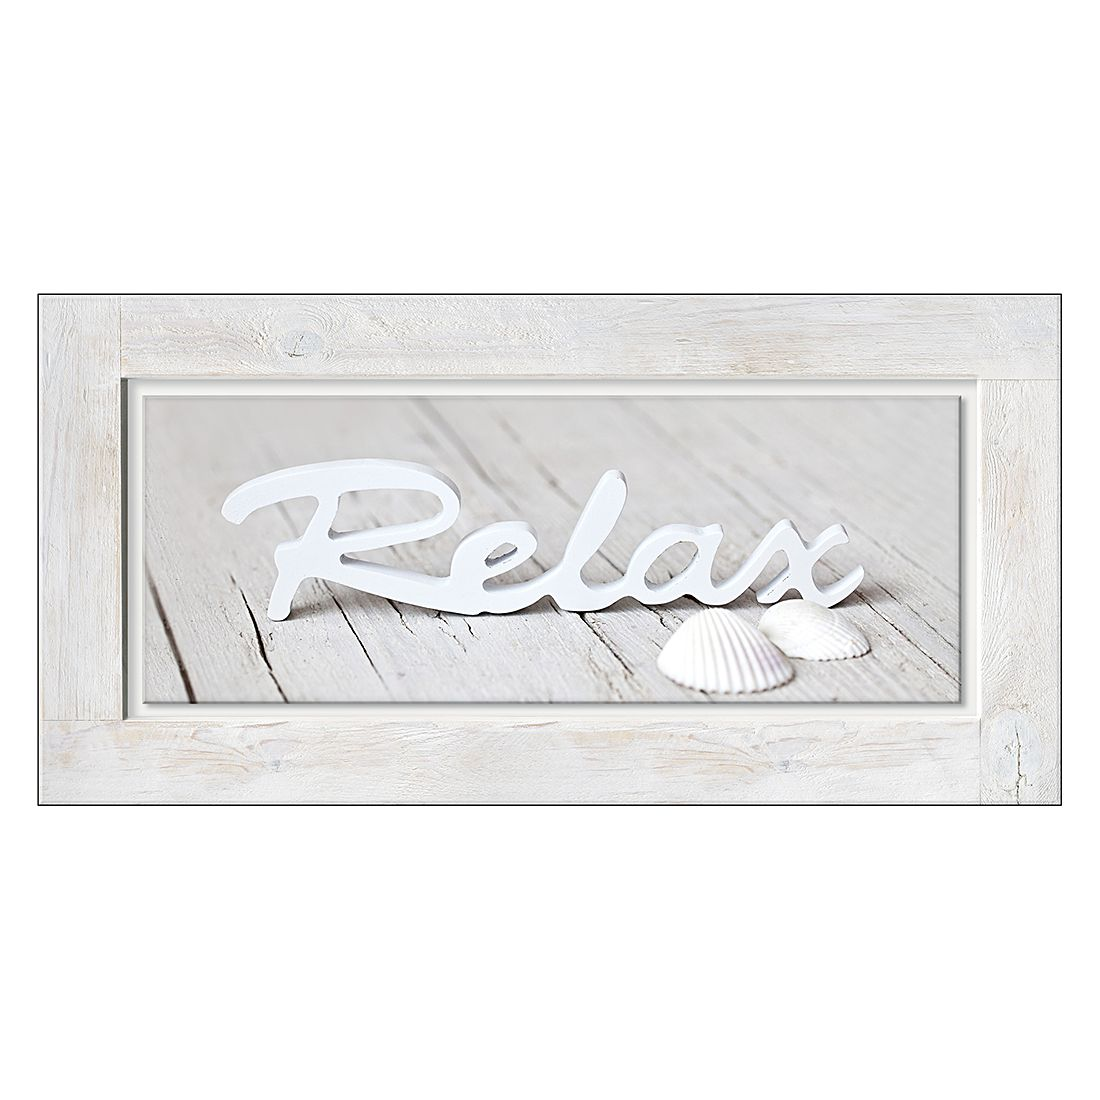 Home 24 - Sous-verre relax iii, pro art